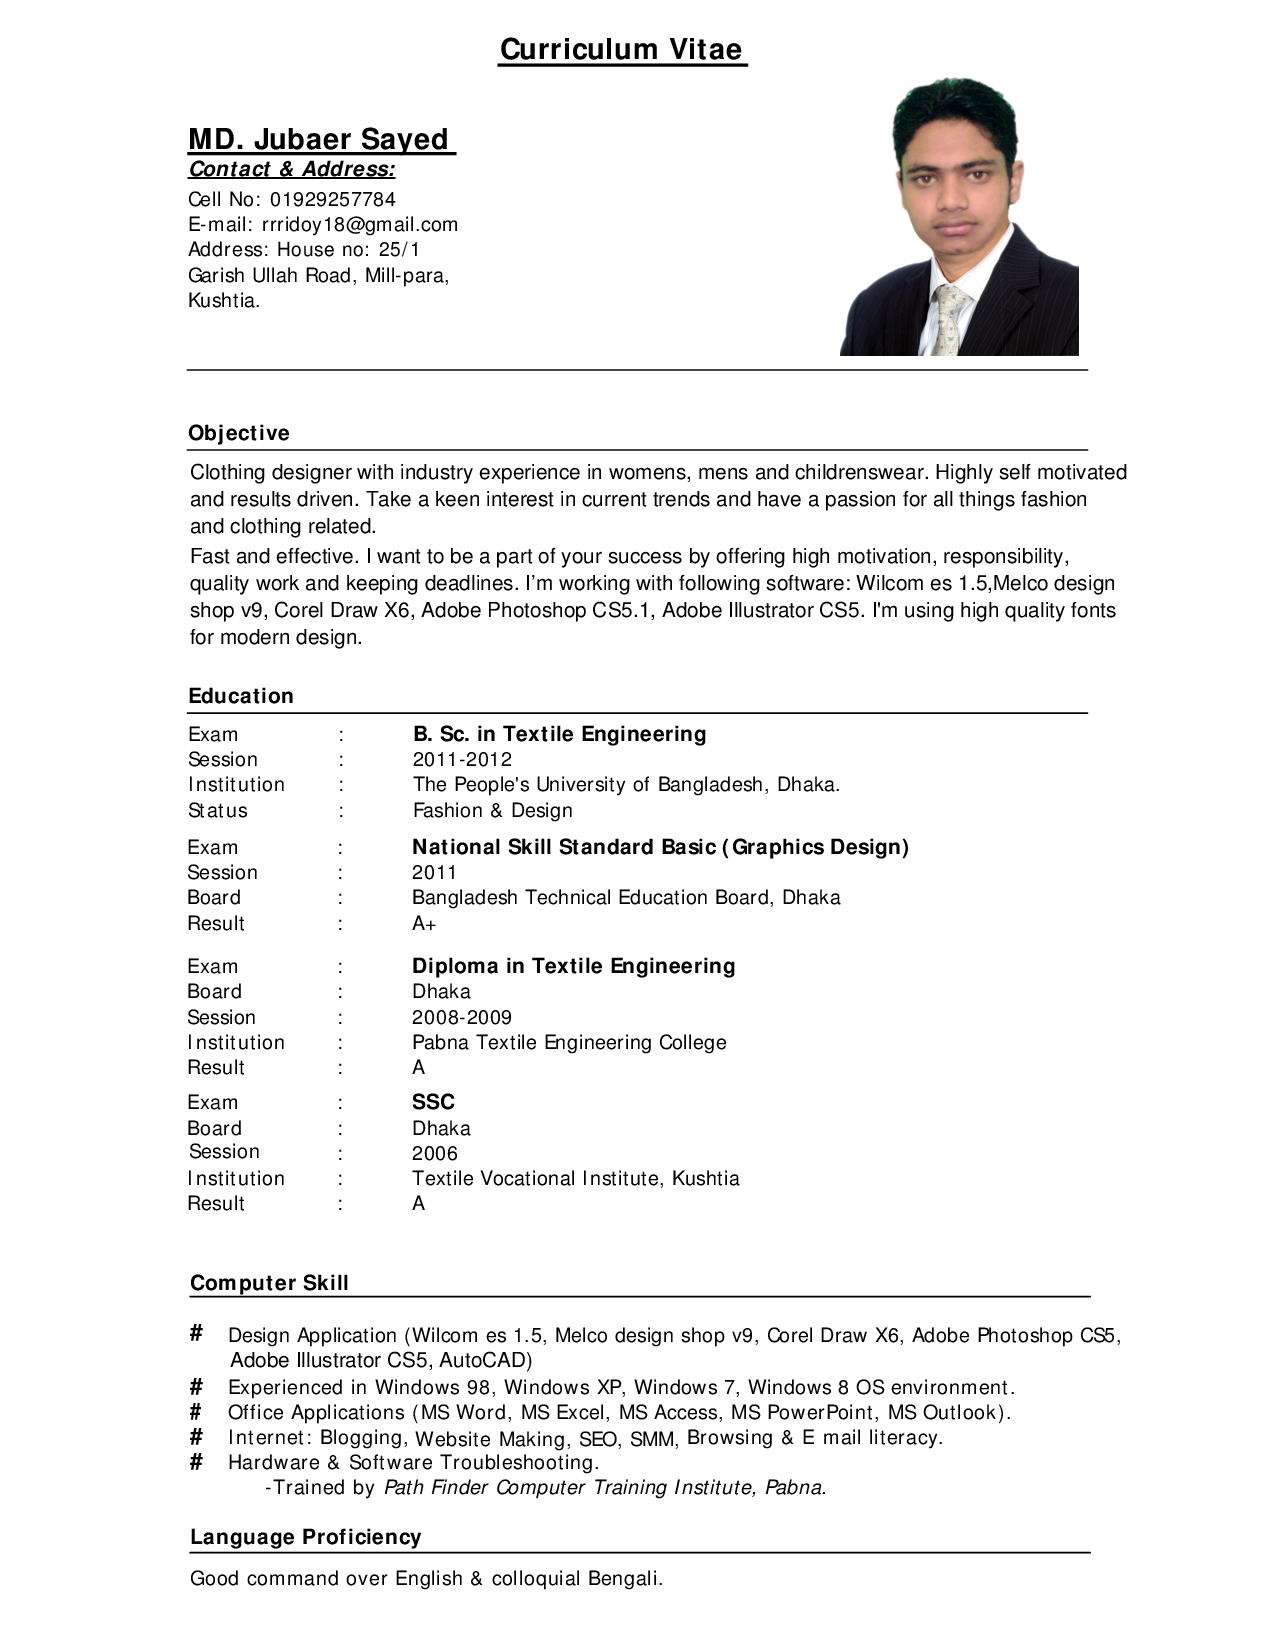 Example Resume, Computer Skills And Education For Curriculum Vitae Resume  Samples Pdf: Curriculum Vitae  Expert Resume Samples